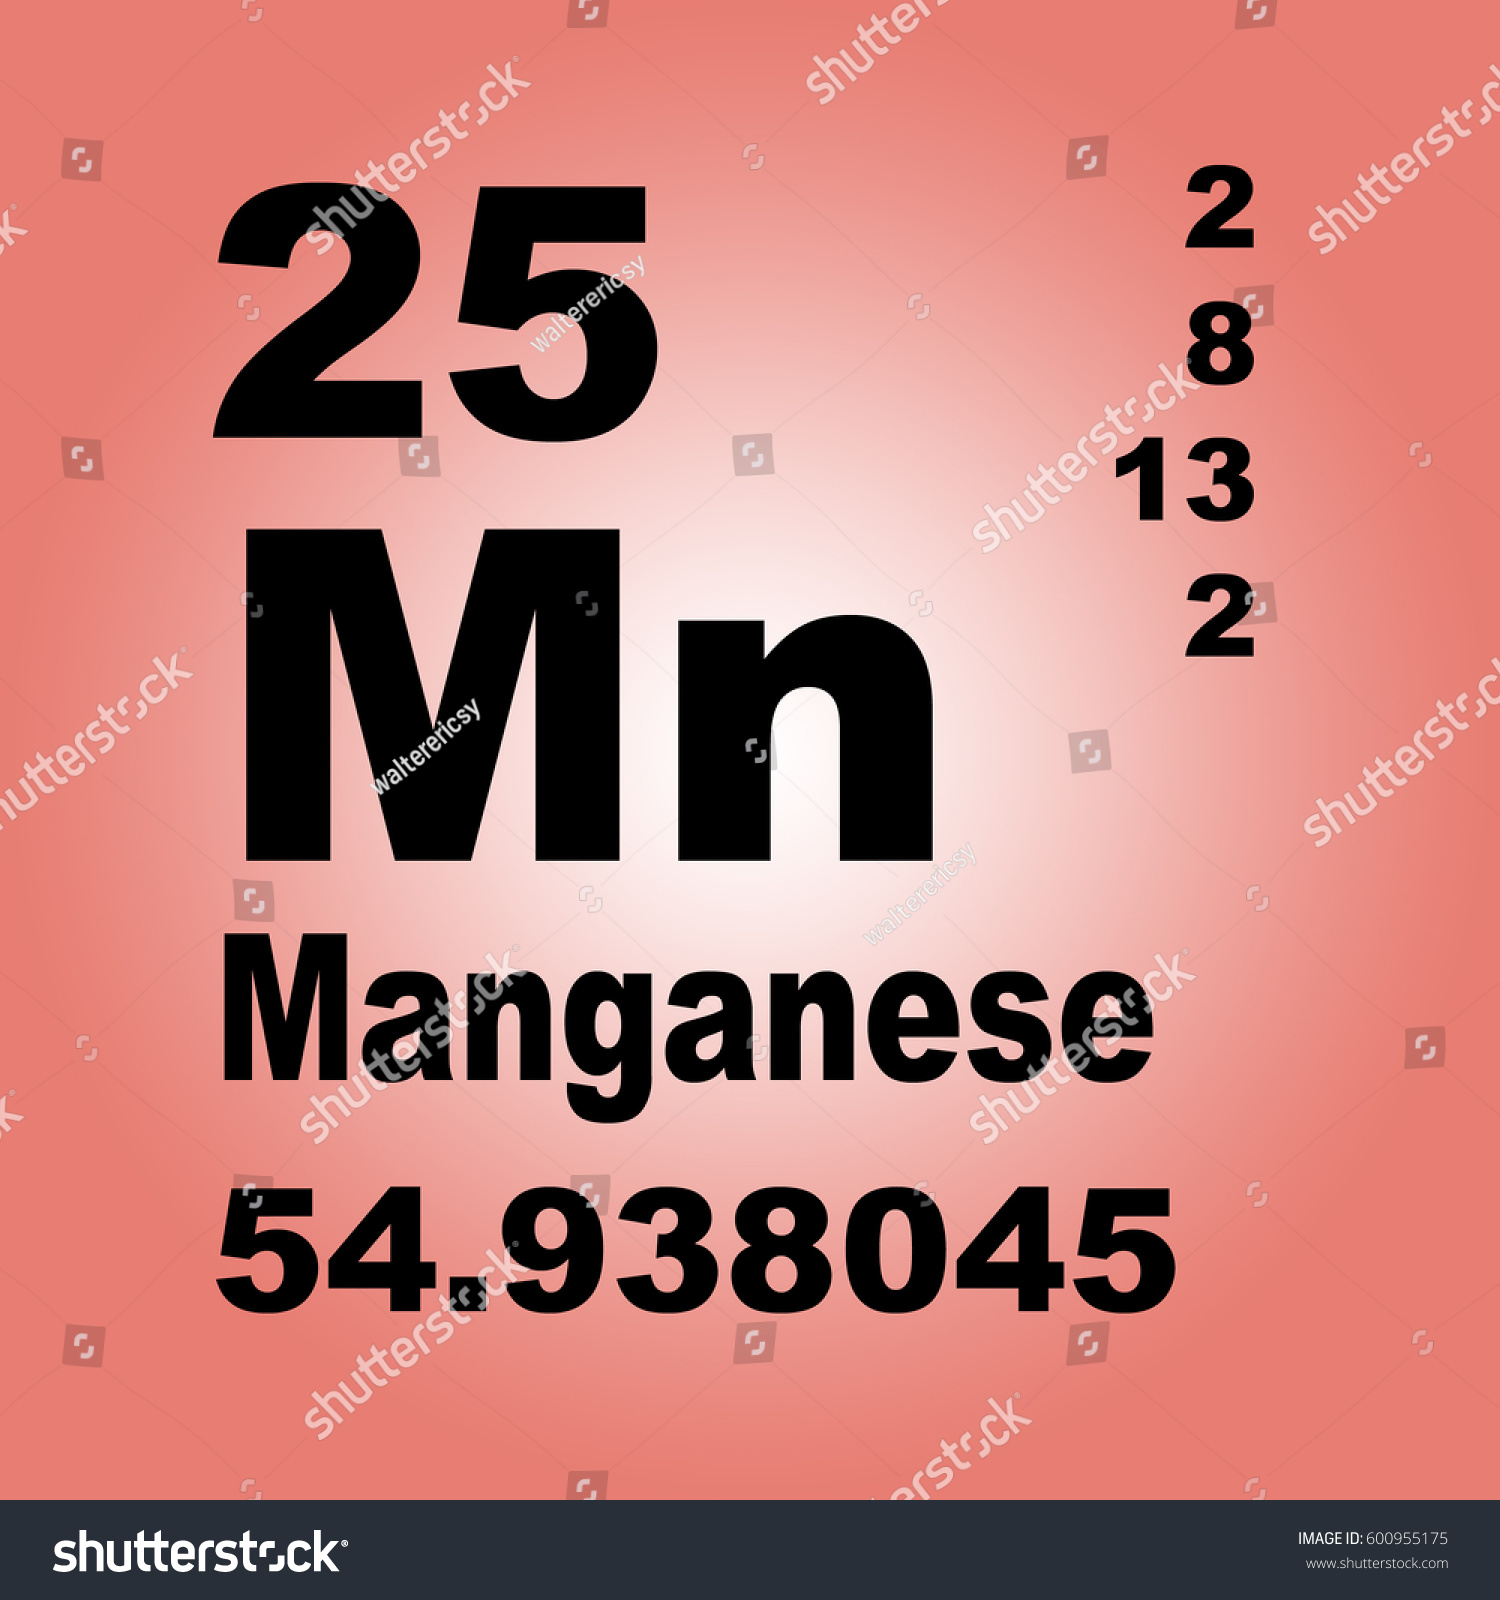 What is mn in periodic table gallery periodic table images what is mn in the periodic table images periodic table images mn element periodic table gallery gamestrikefo Gallery